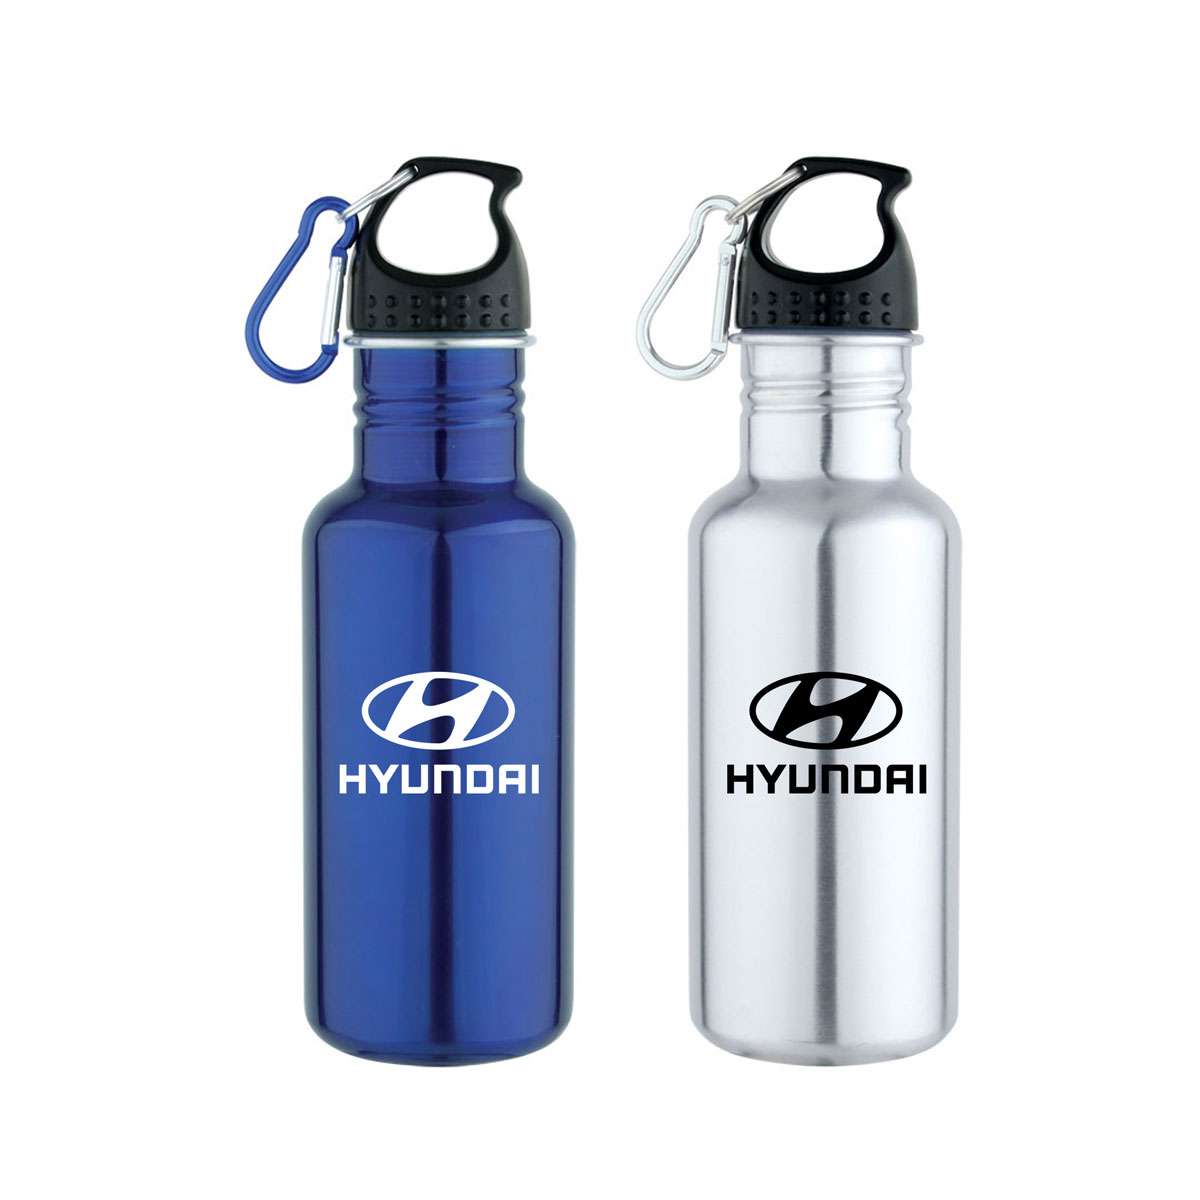 22oz. CANON STAINLESS STEEL WATER BOTTLE